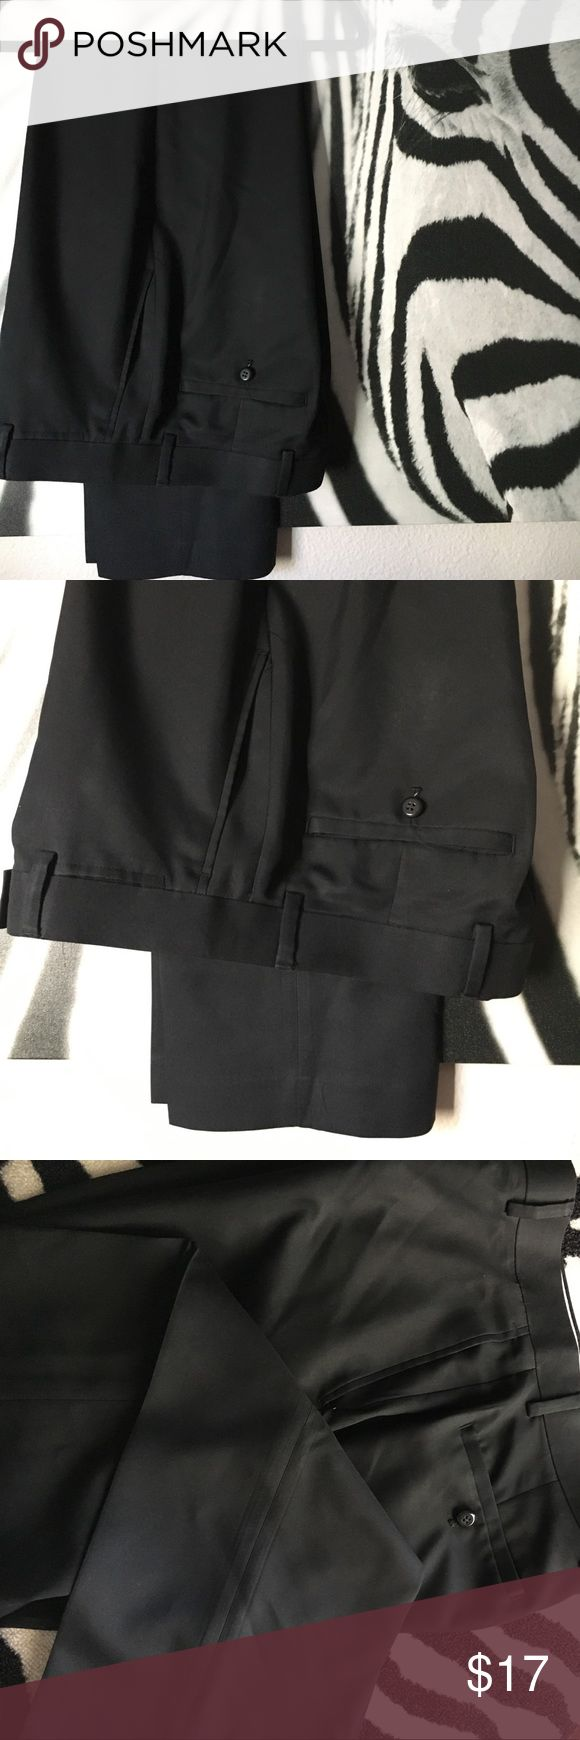 MENS Louis Raphael Black Dress Slacks MENS Louis Raphael Black Dress Slacks. 100% polyester. Size 32/32. In EXCELLENT preloved condition with no stains, tears, or odors. Have been professionally dry cleaned and pressed with light starch. Louis Raphael Pants Dress